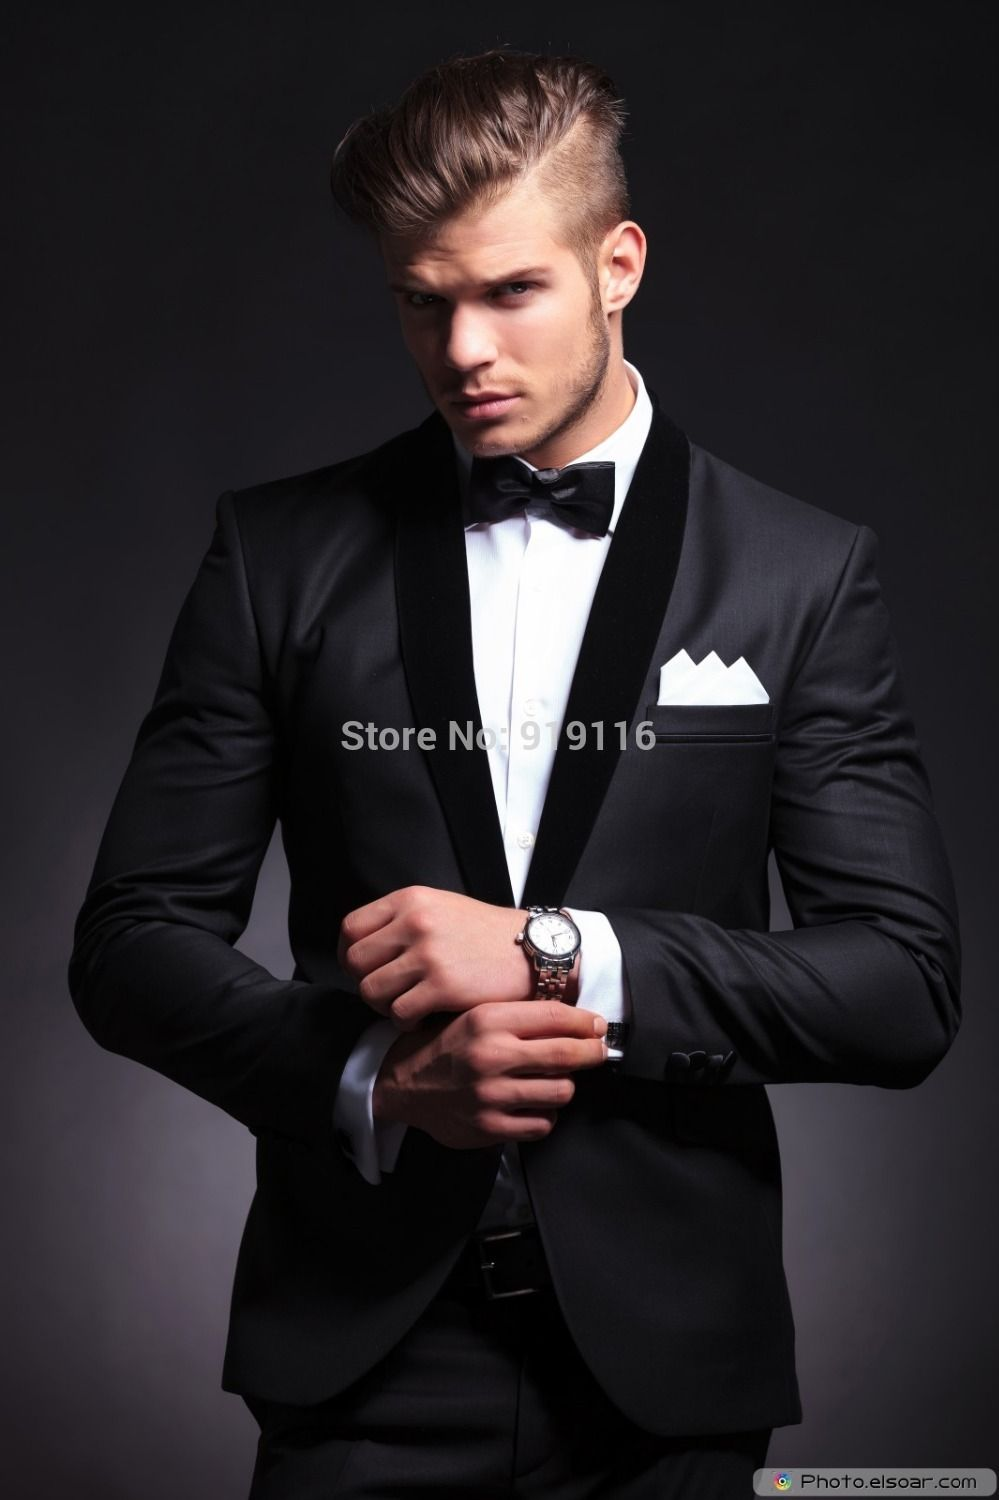 Cheap suit prom, Buy Quality suit directly from China suit belt ...